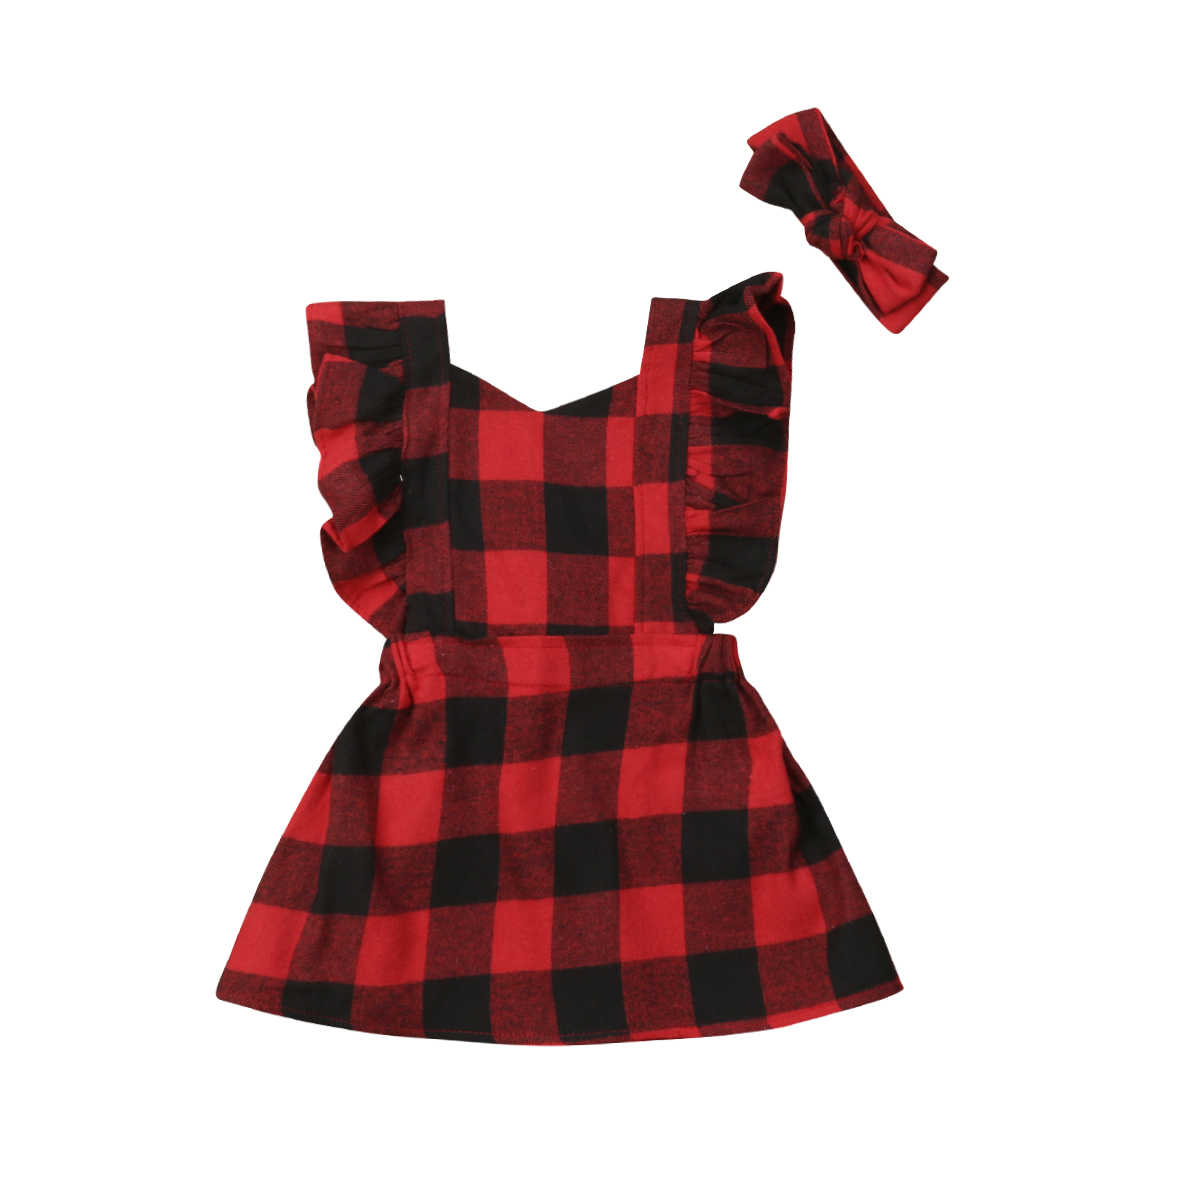 475544a82 Christmas Baby Girl Dress Red Plaid Newborn Infant Girls Tutu Dress  Princess Party New Year Dress